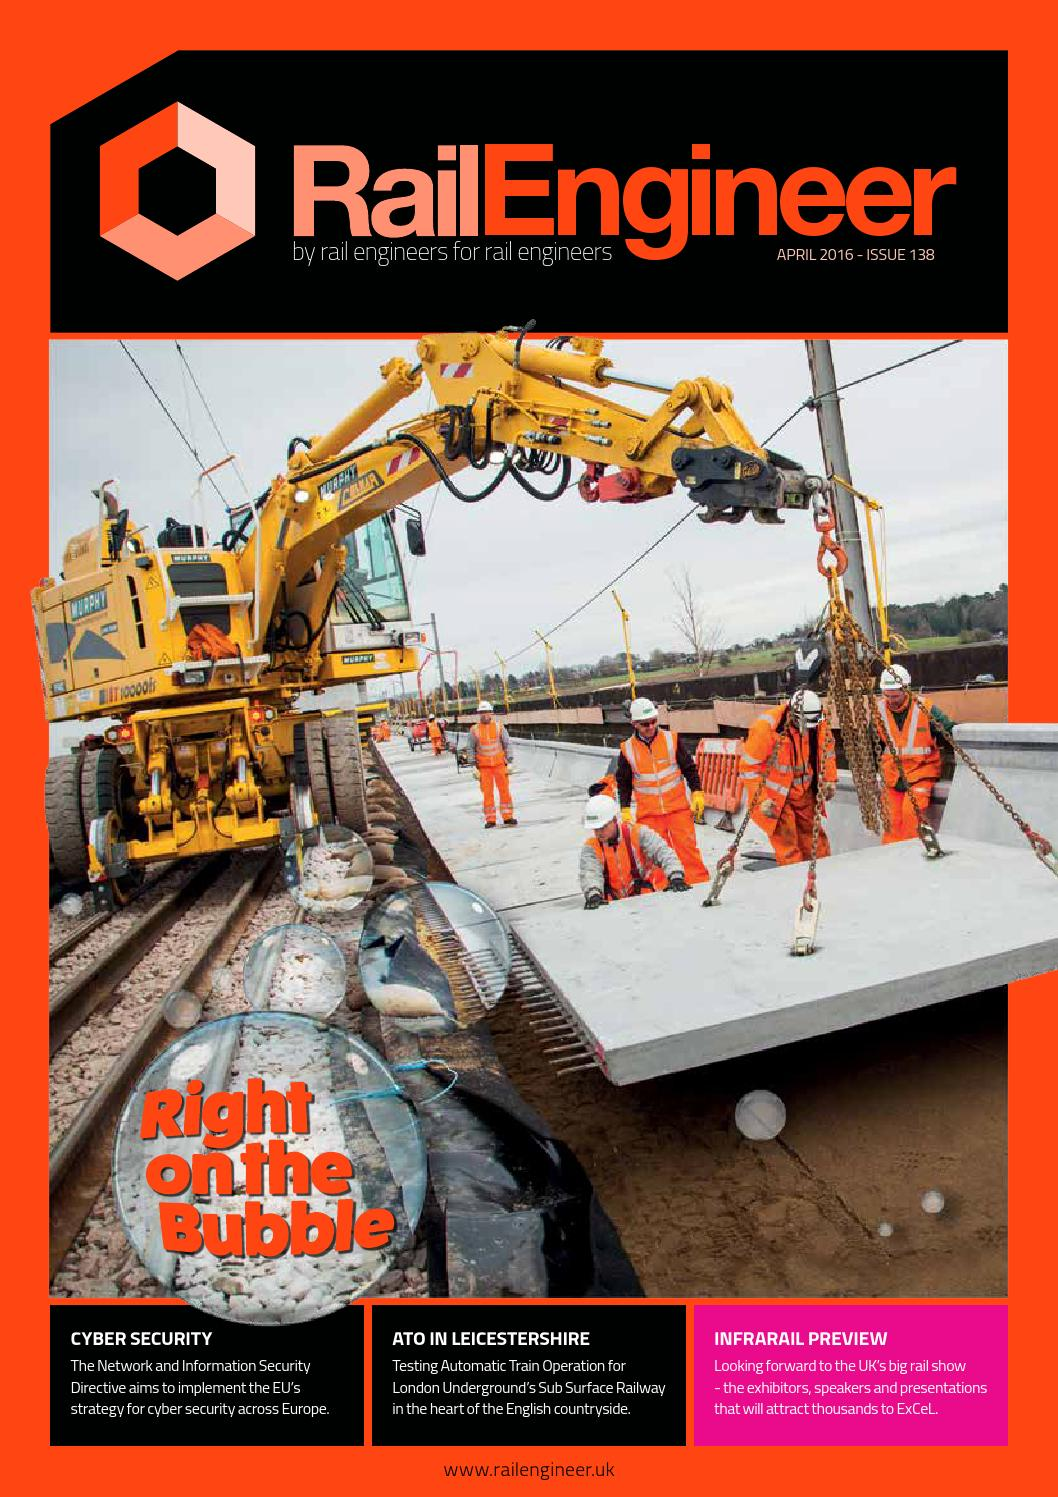 Rail Engineer Issue 138 April 2016 By Media Issuu Gt Speciality Test Equipment Automotive Circuit Voltage Tester